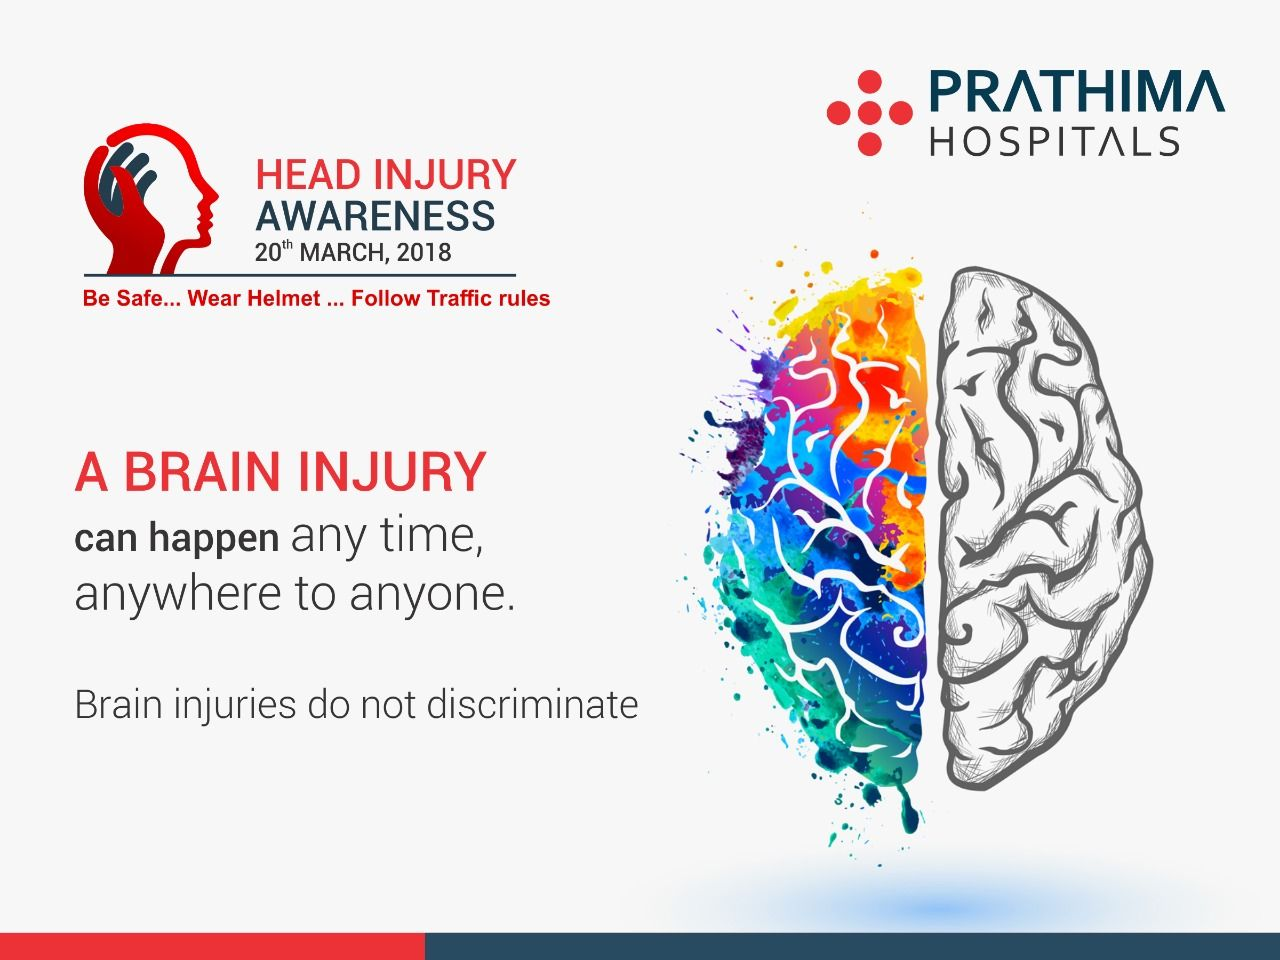 World Head Injury Awareness Day Is A Public Health And Awareness Campaign That Falls On The 20th Of March Every Year I Prevention Awareness Campaign Awareness